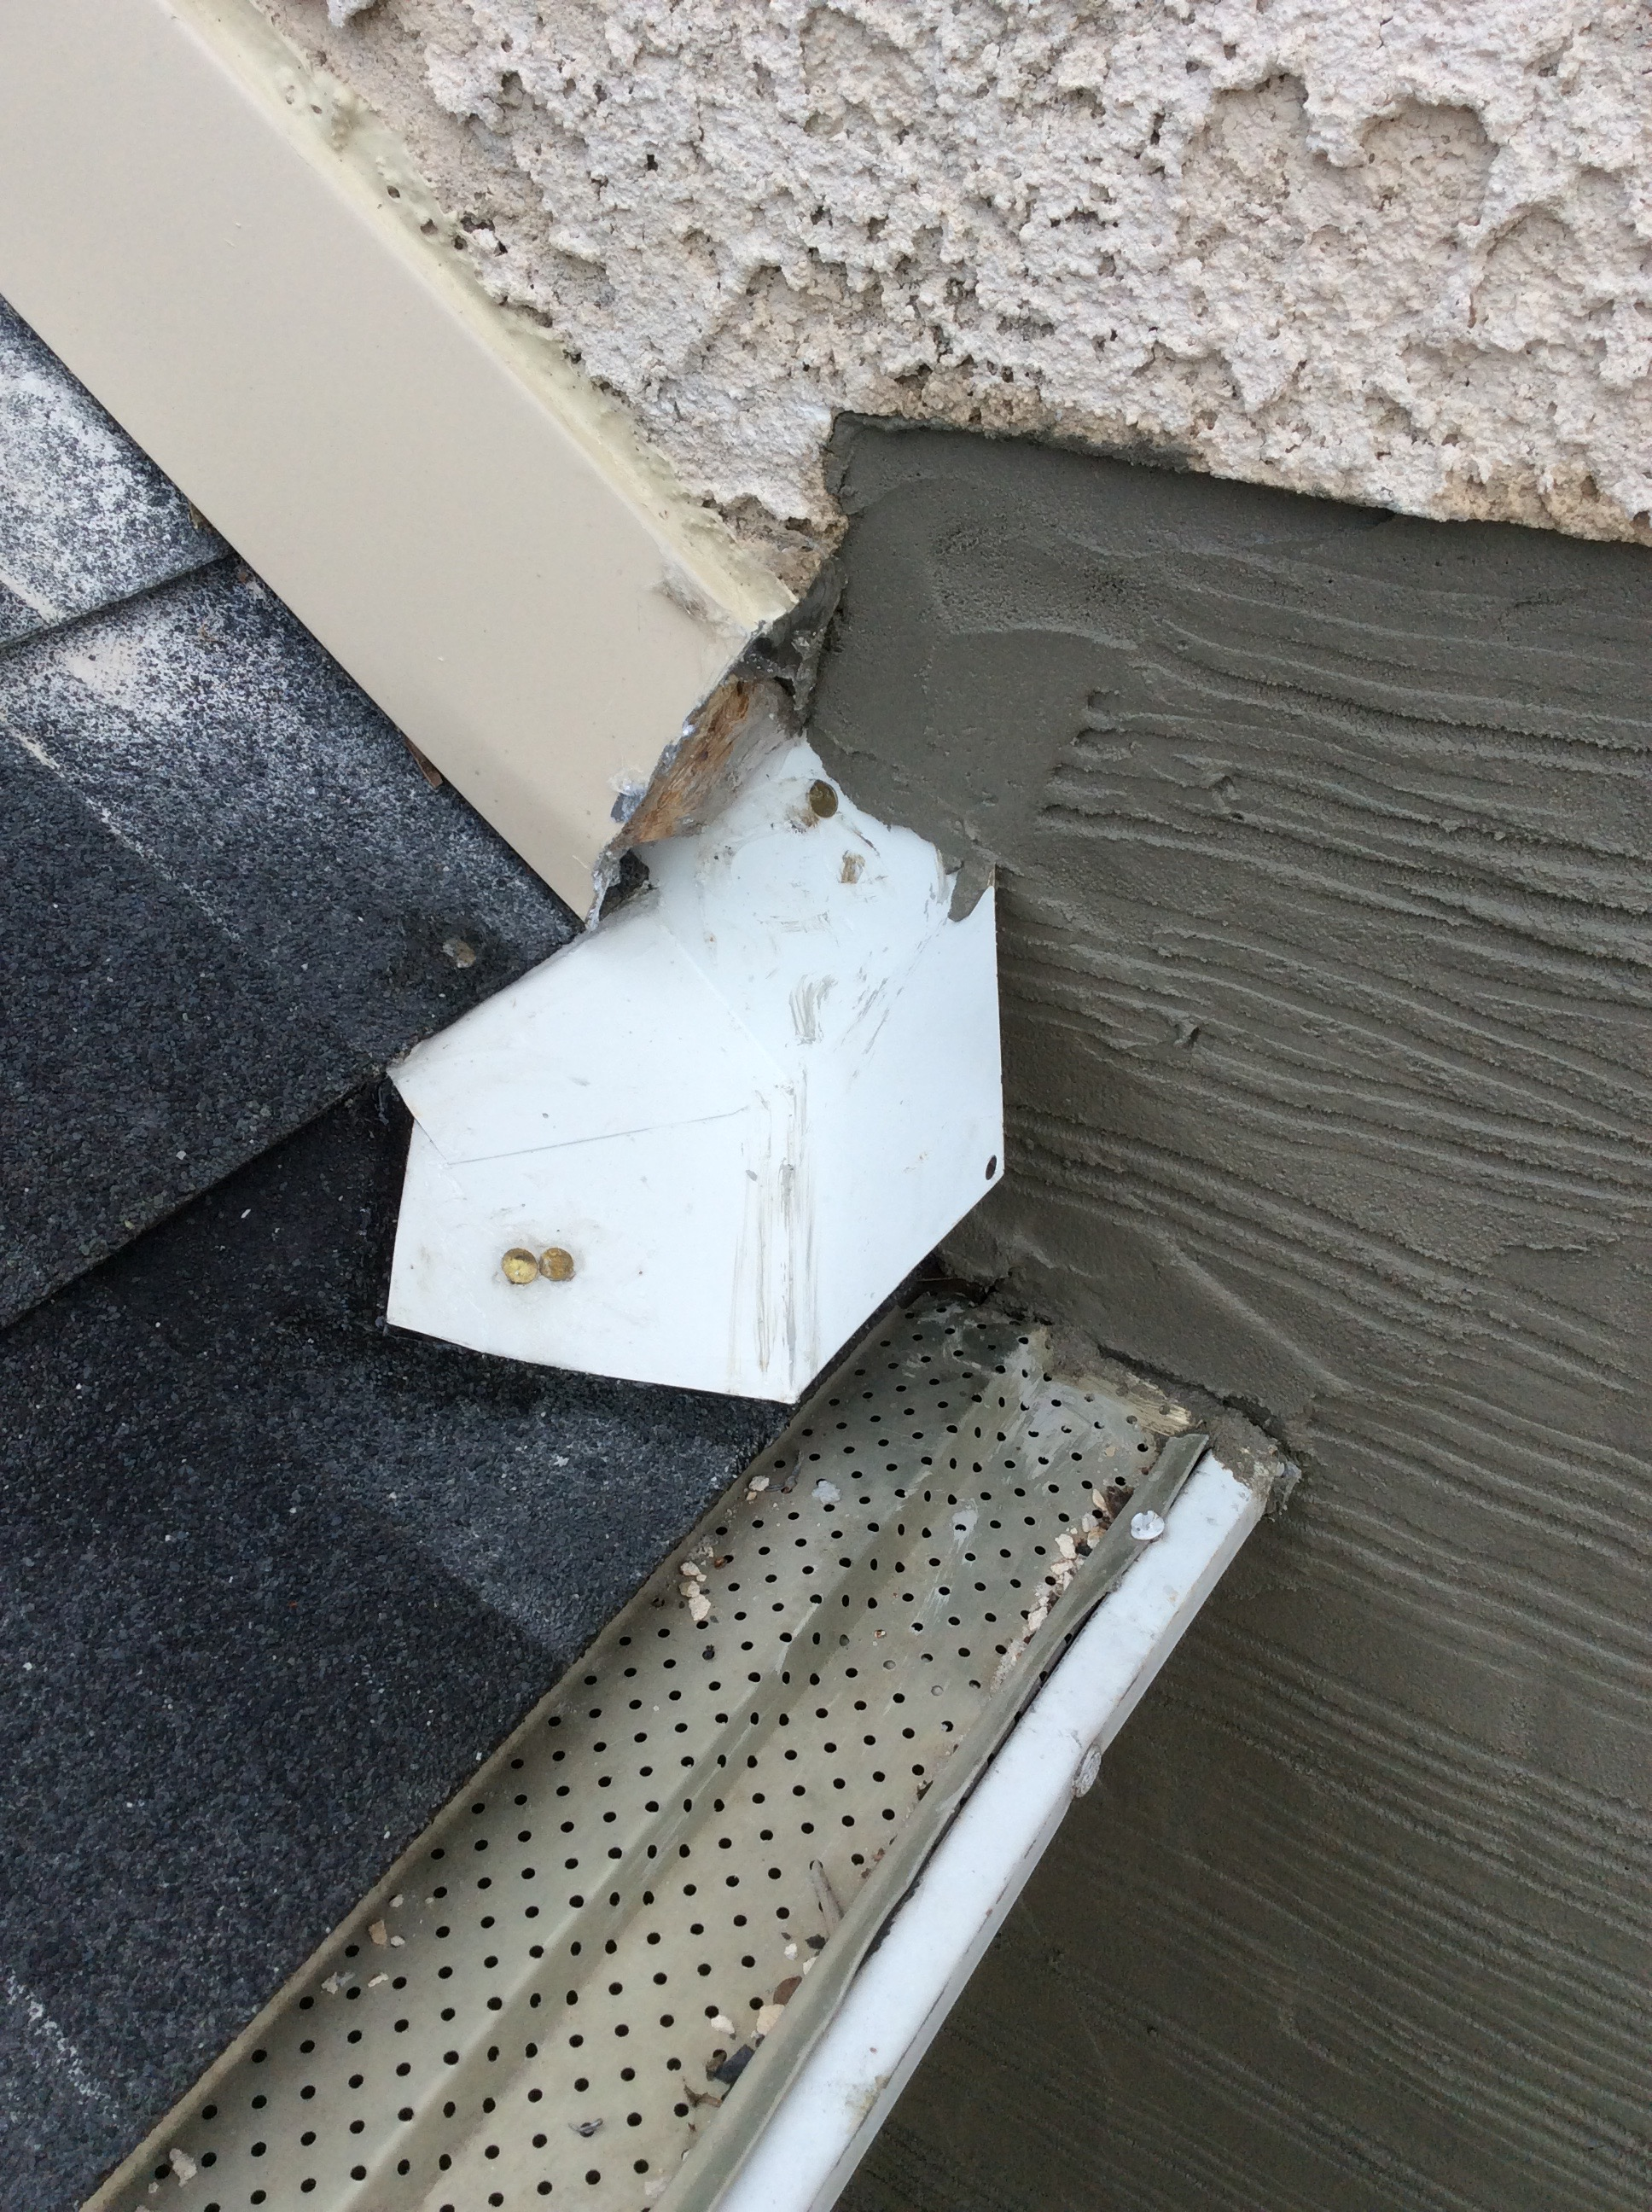 Kick-out Diverters keep water away from stucco walls.